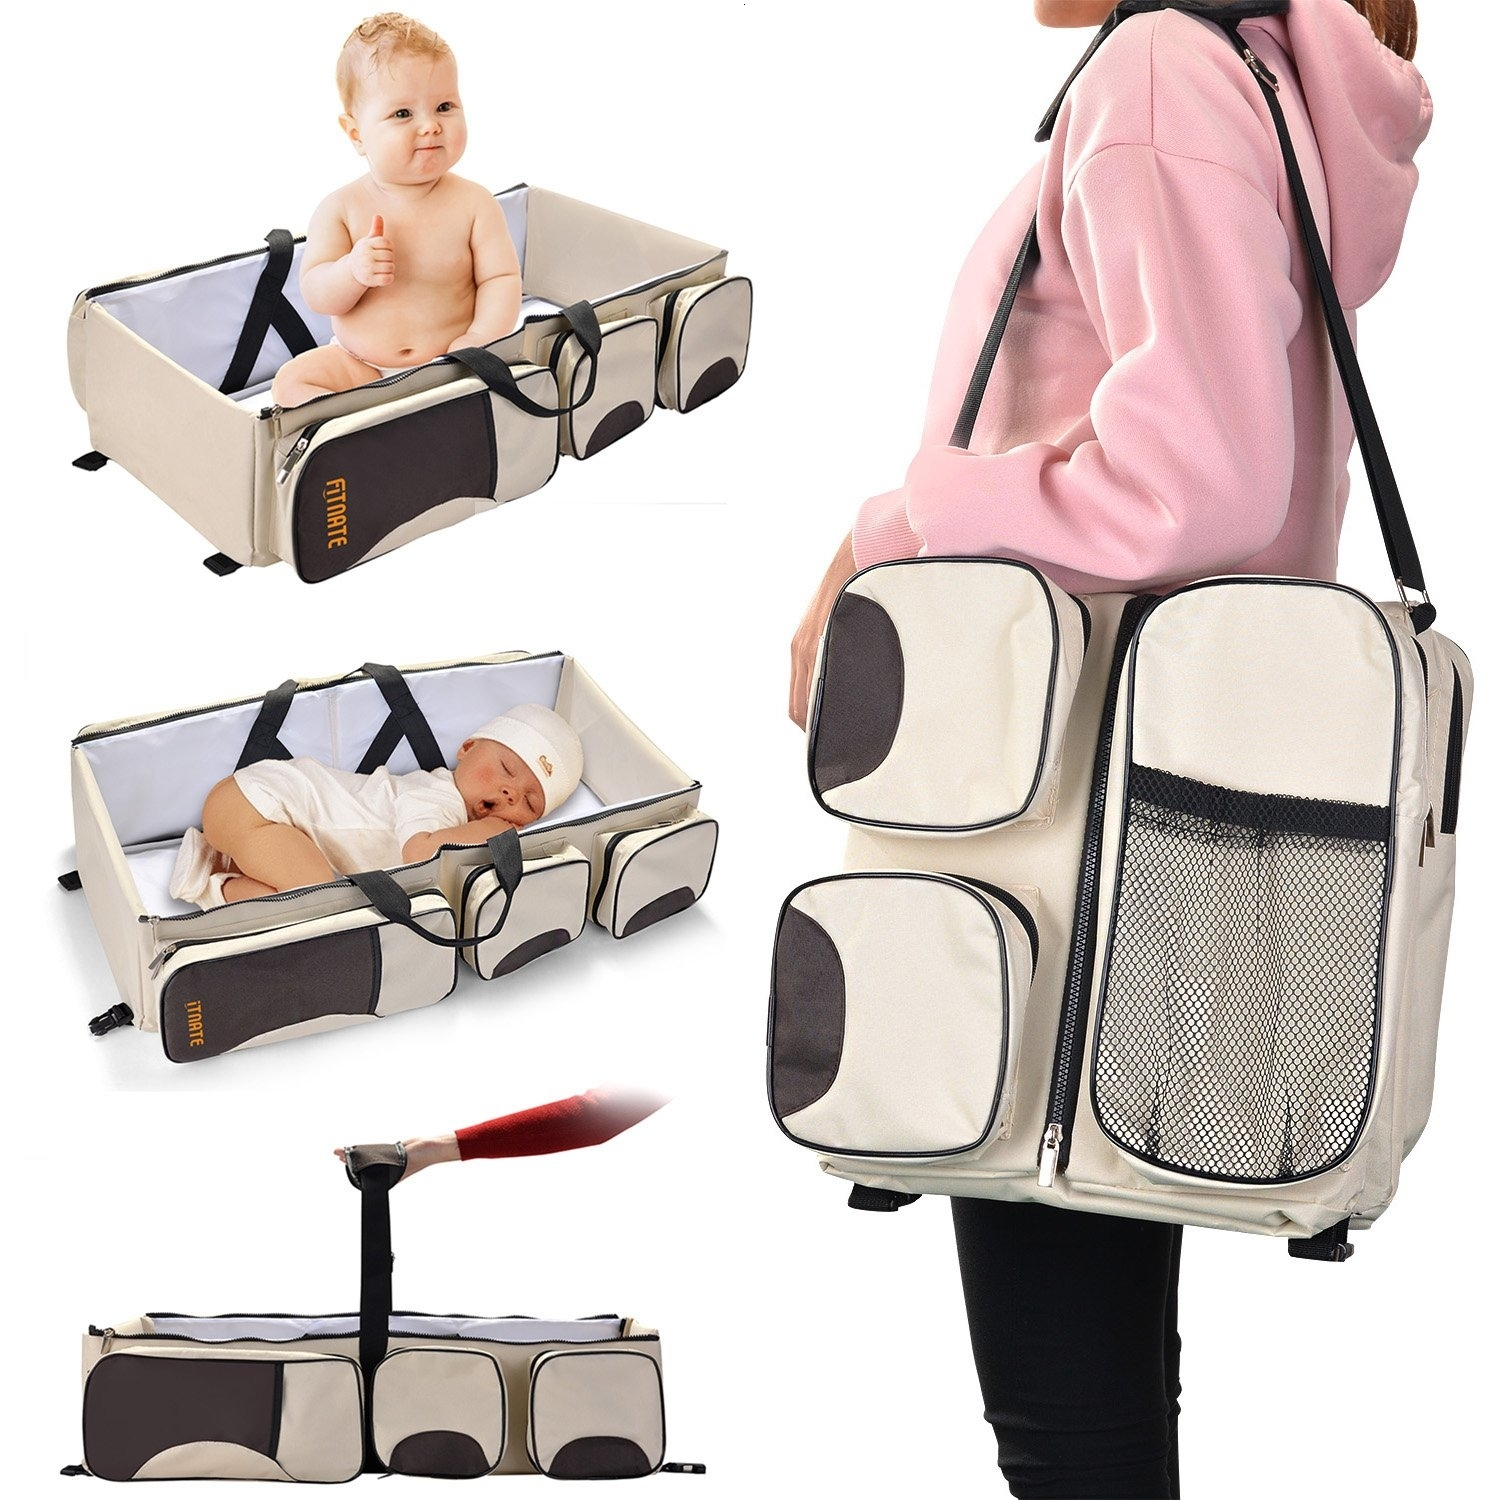 3 In 1 Portable Changing Bag Multi-function Baby Diaper Bag For Stroller Waterproof Travel Infant Baby Changing Bag